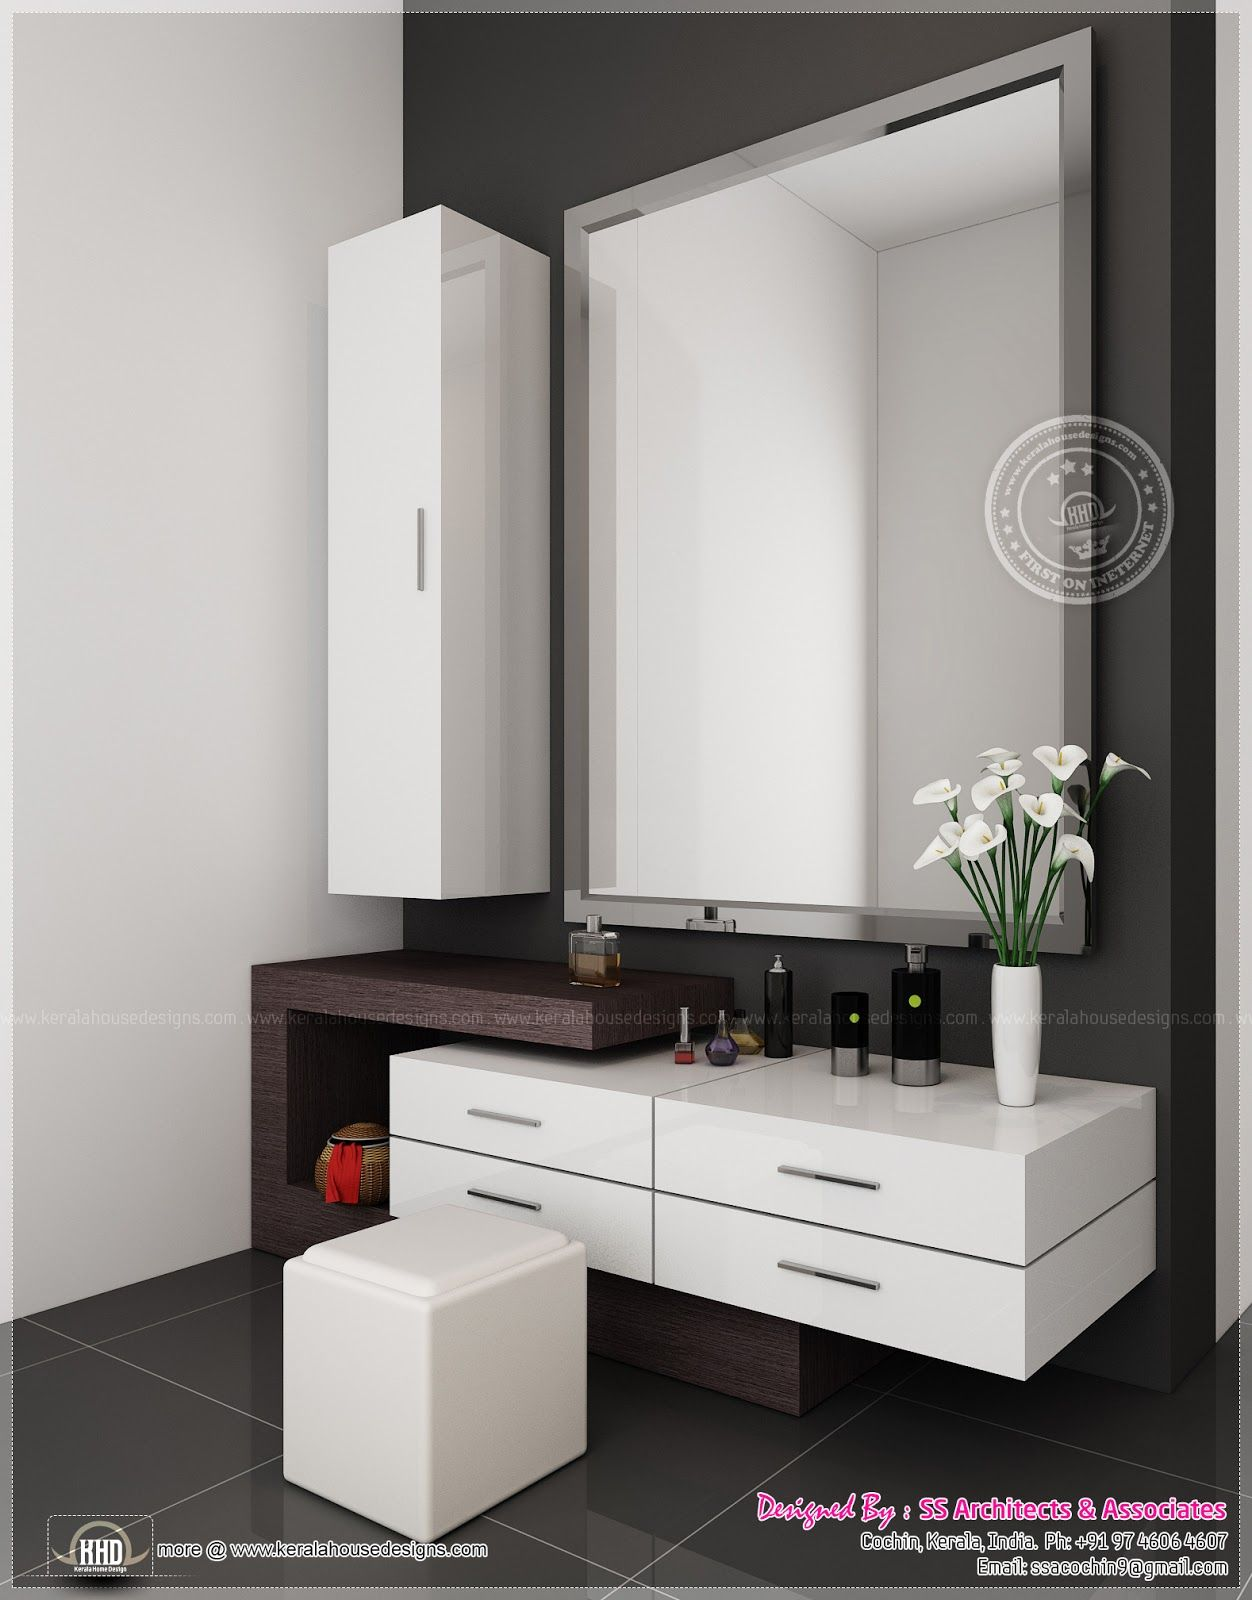 Bedroom dressing table with mirror - Cool Dressing Table Design Designs Small For Bedroom With Almirah Simple Full Length Mirror In Wood